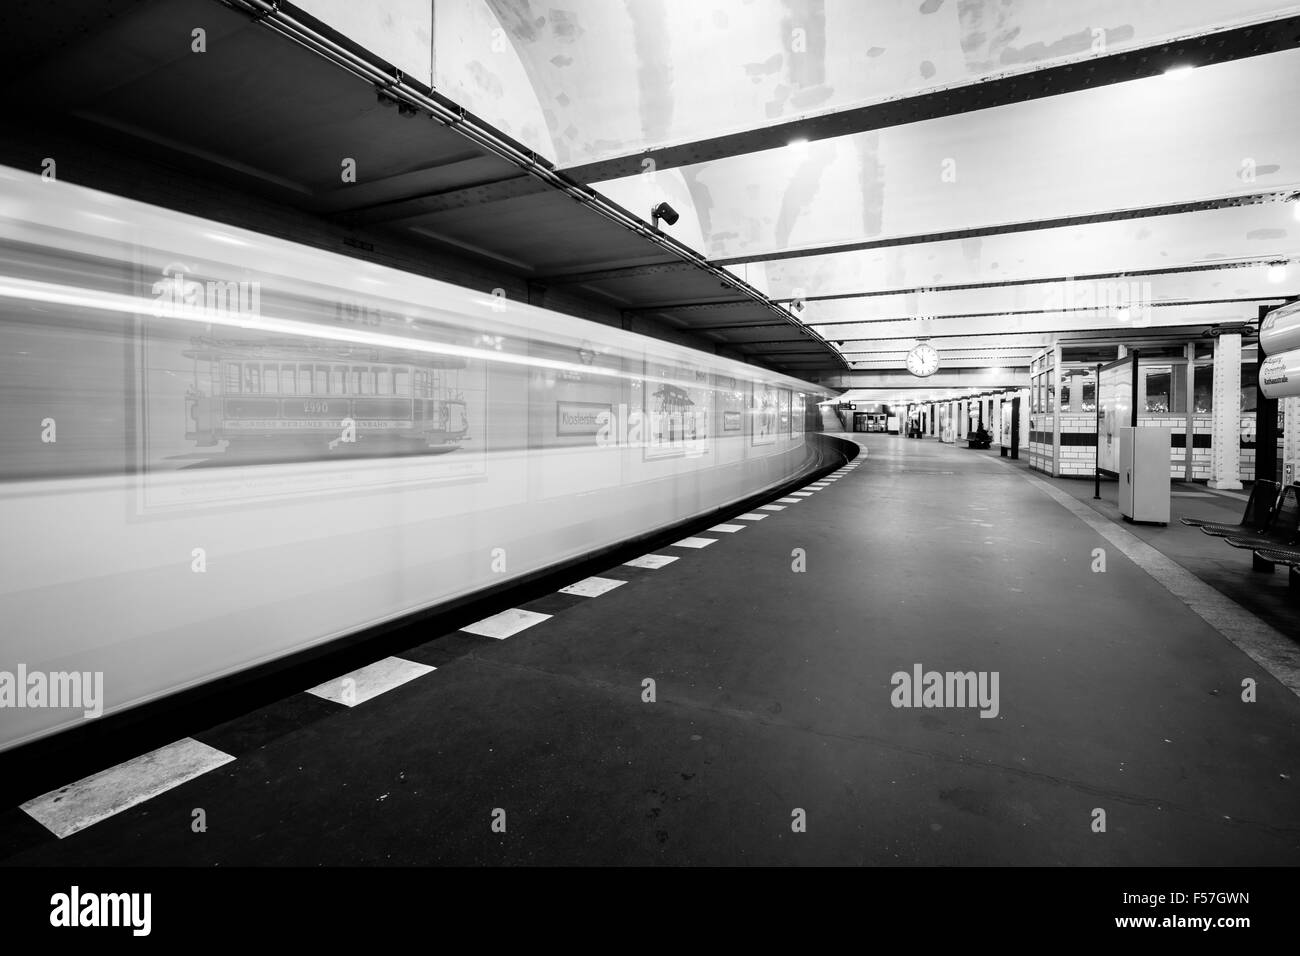 Metro station. The arrival of the train. Motion blur. Black and white. - Stock Image